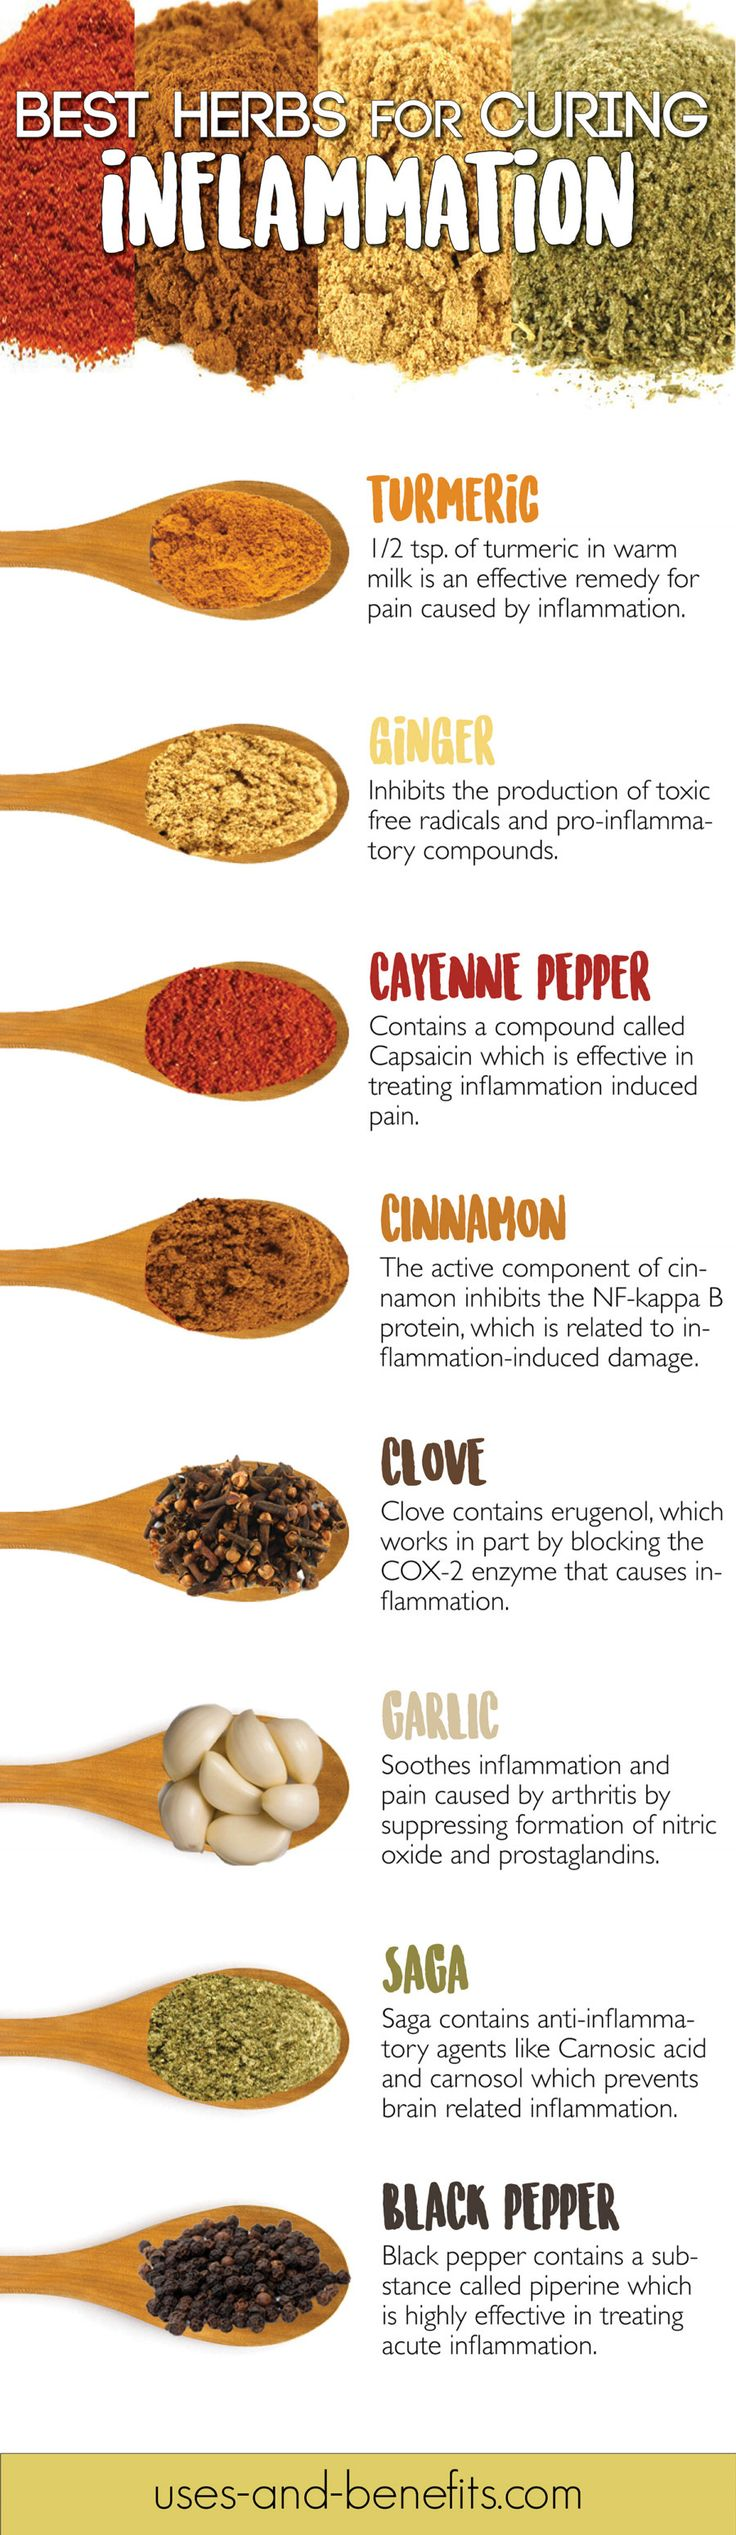 Best Herbs for Curing Inflammation.